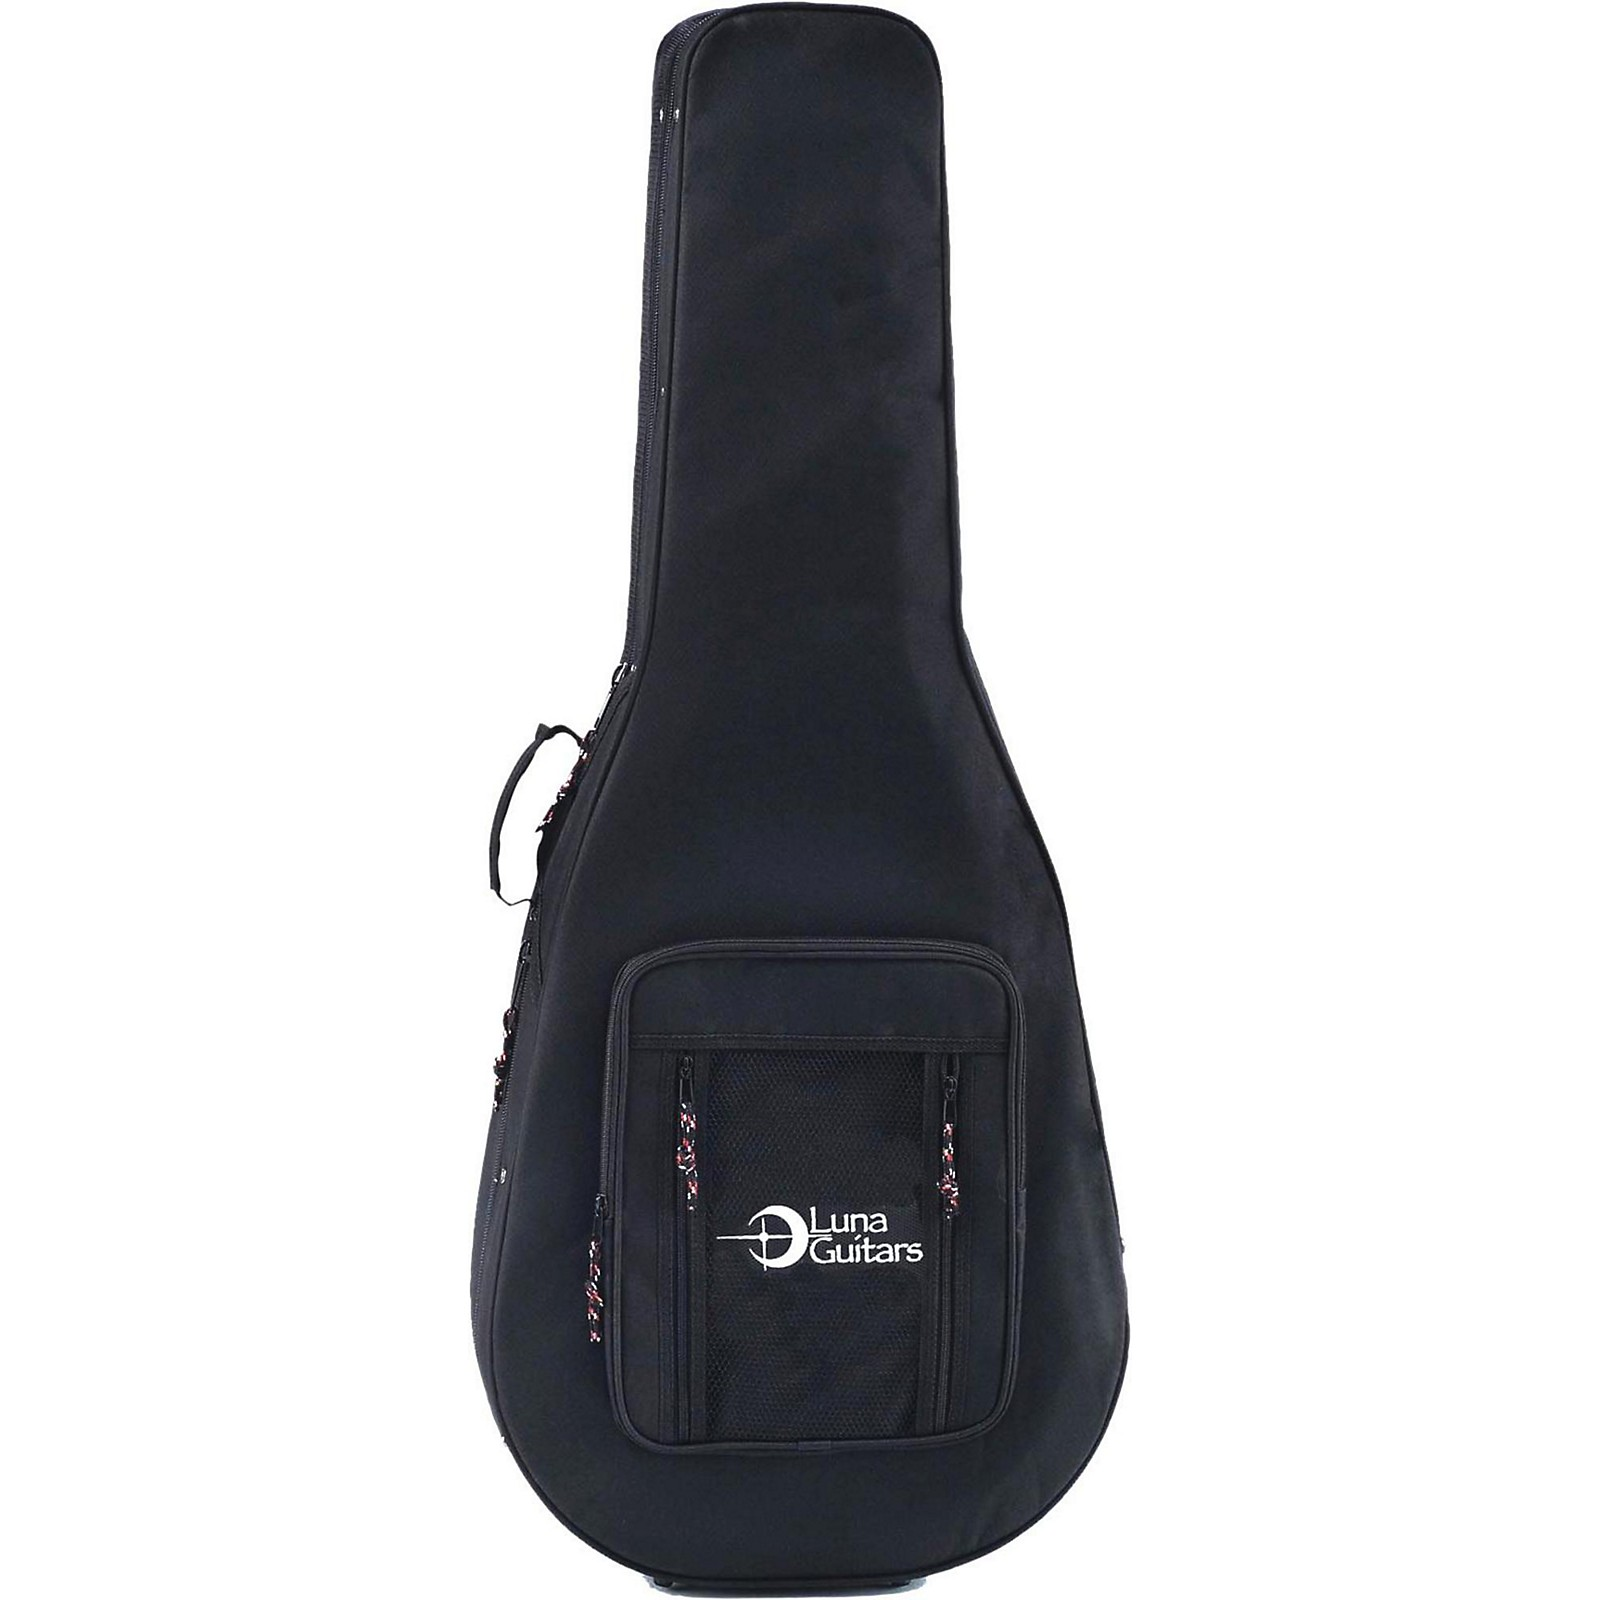 Luna Guitars Lightweight Case for Folk and Parlor Size Guitars